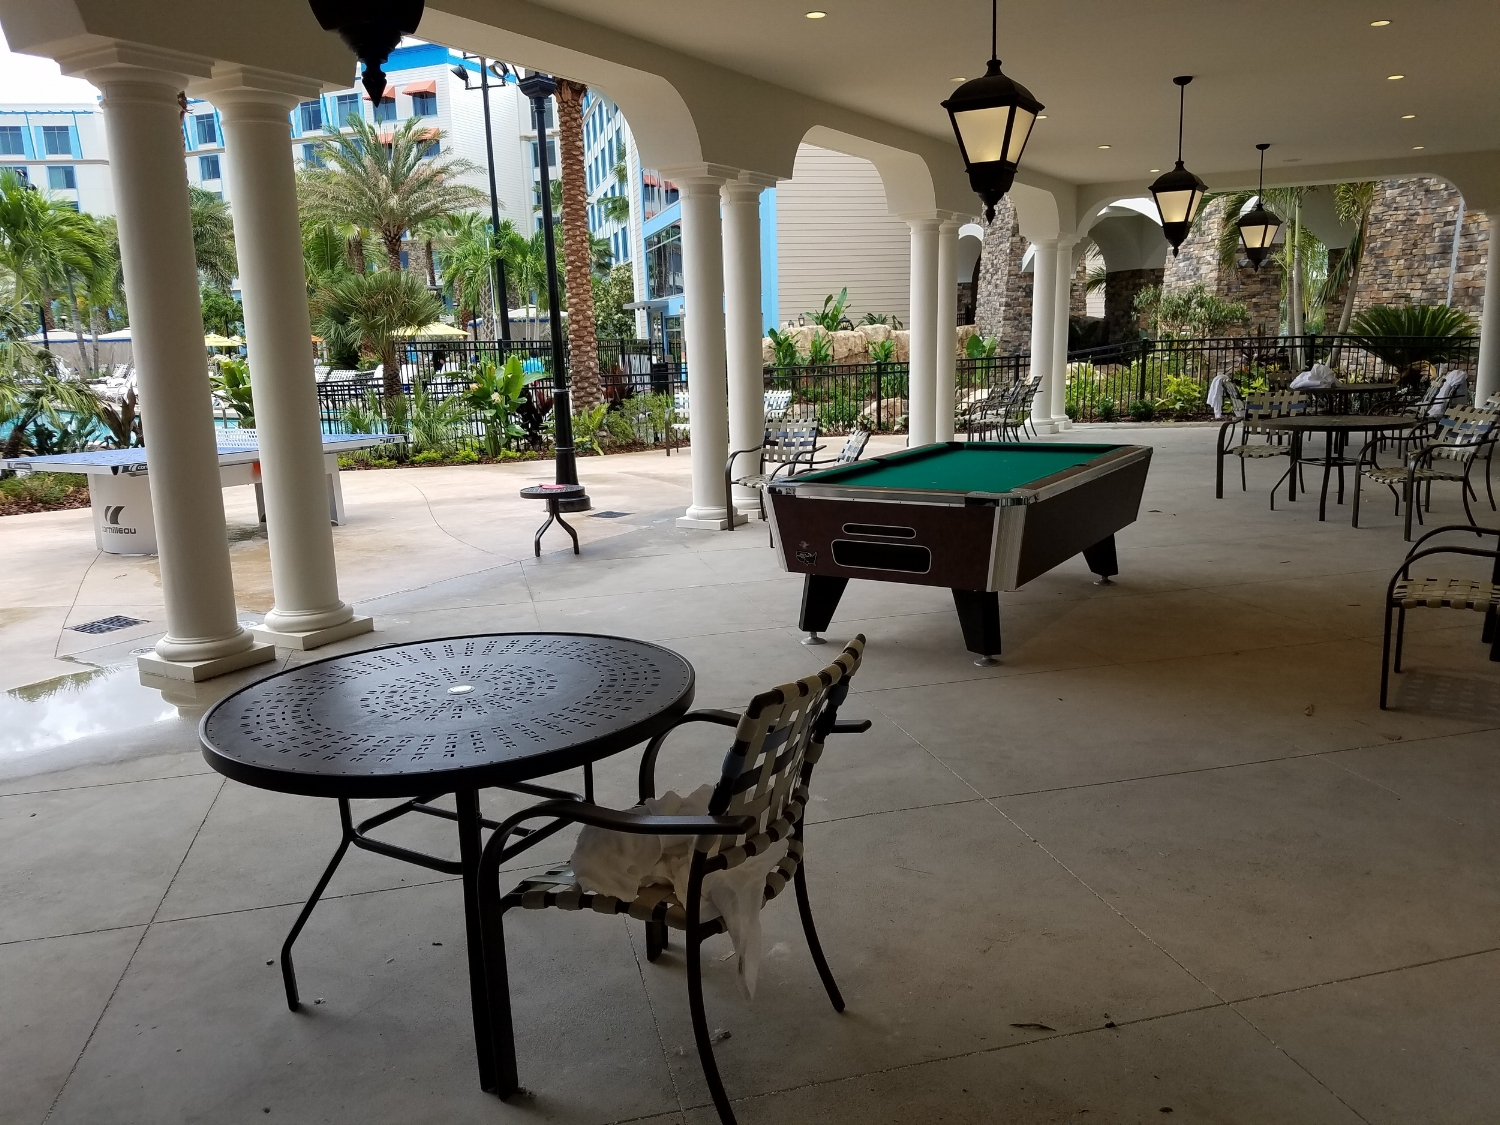 Covered Seating Area Near the Pool at Loews Sapphire Falls Resort